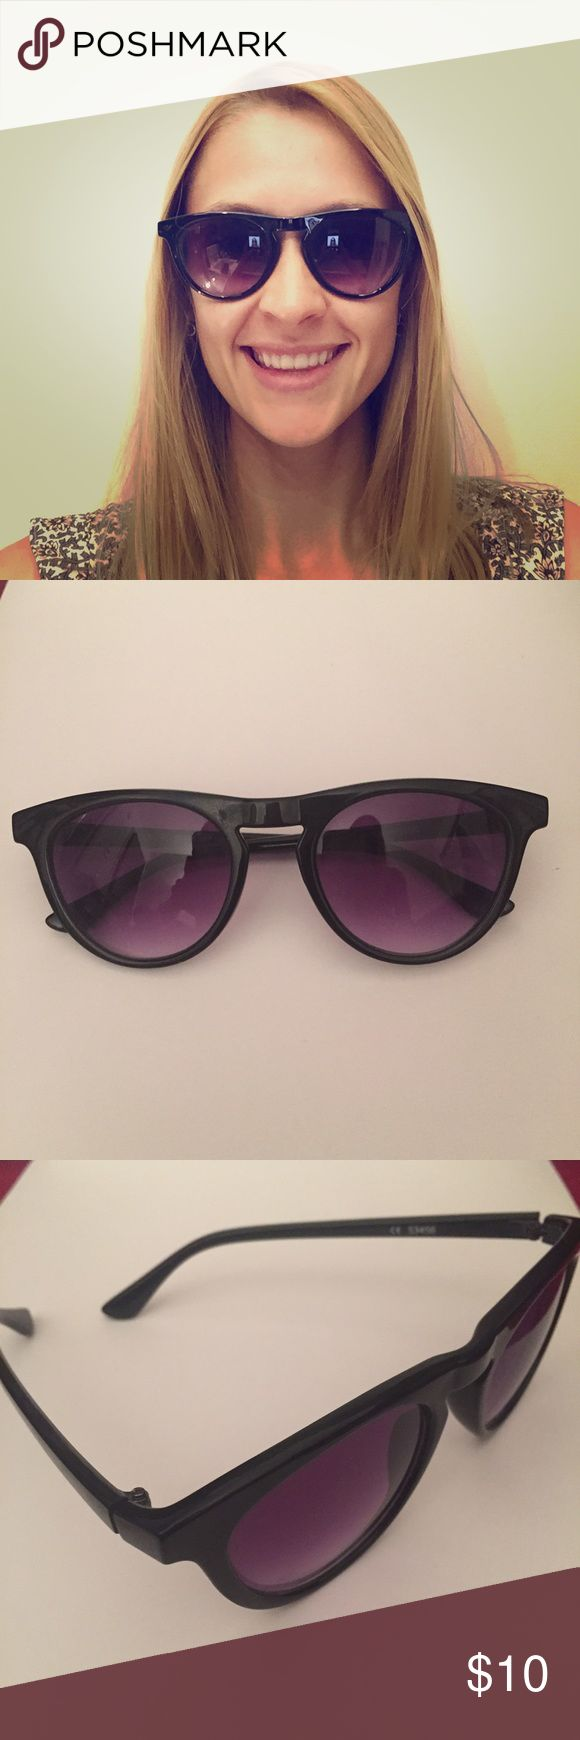 Sunglasses - Oak NYC Black sunglasses with purple tinted lenses from Oak NYC A.J Morgan Accessories Glasses